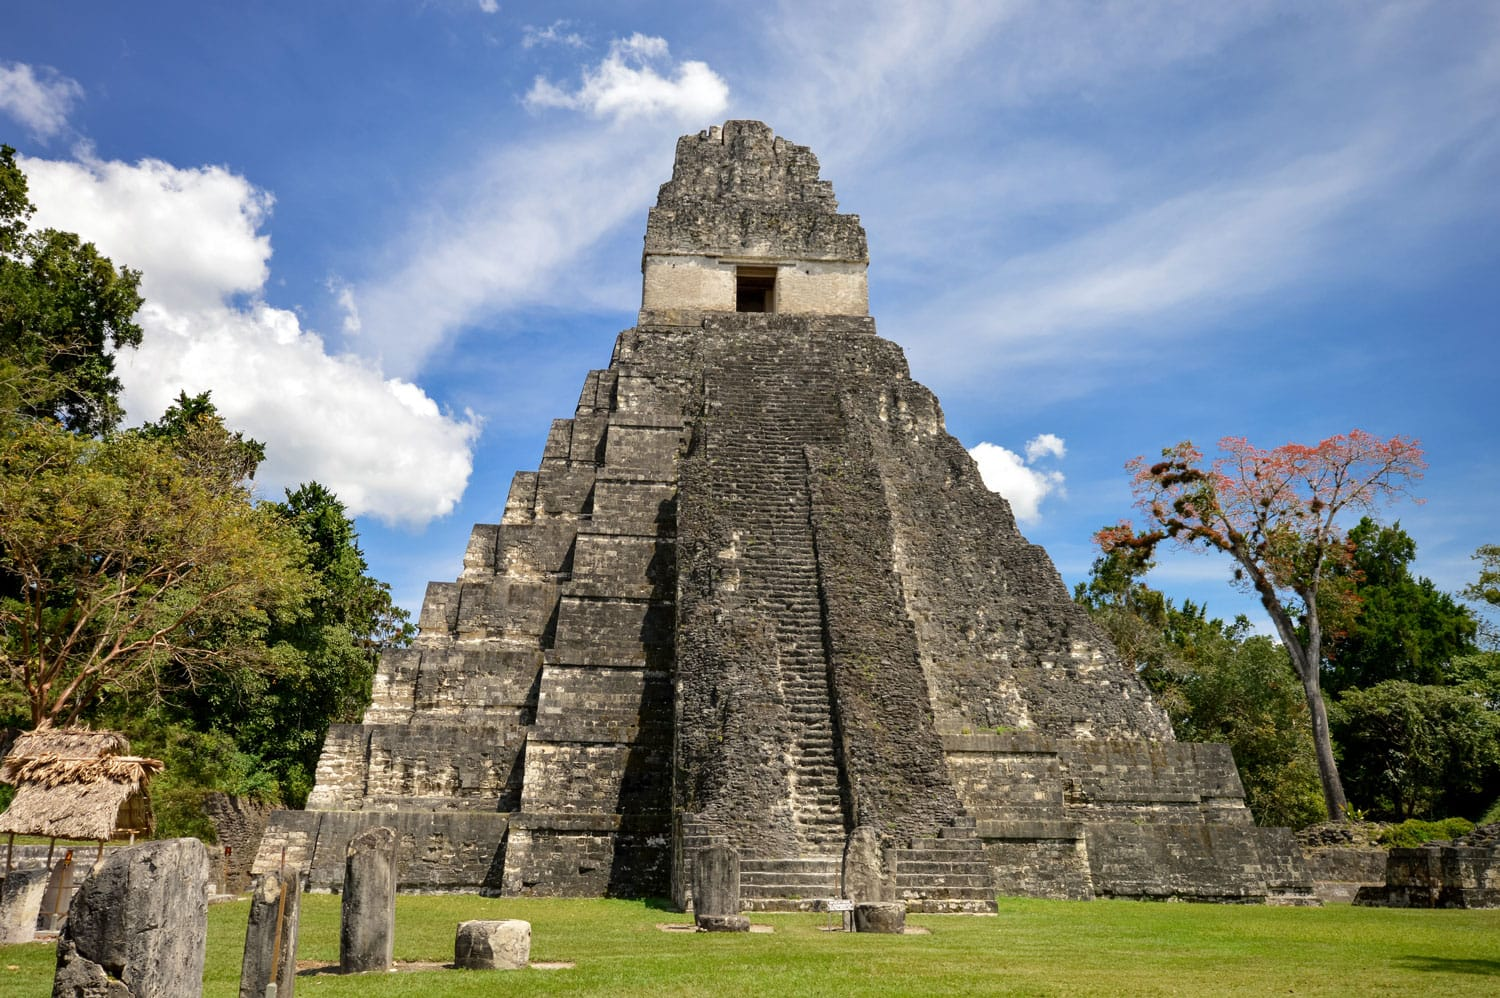 Temple I of the Maya archaeological site of Tikal in Peten, Guatemala. Central America